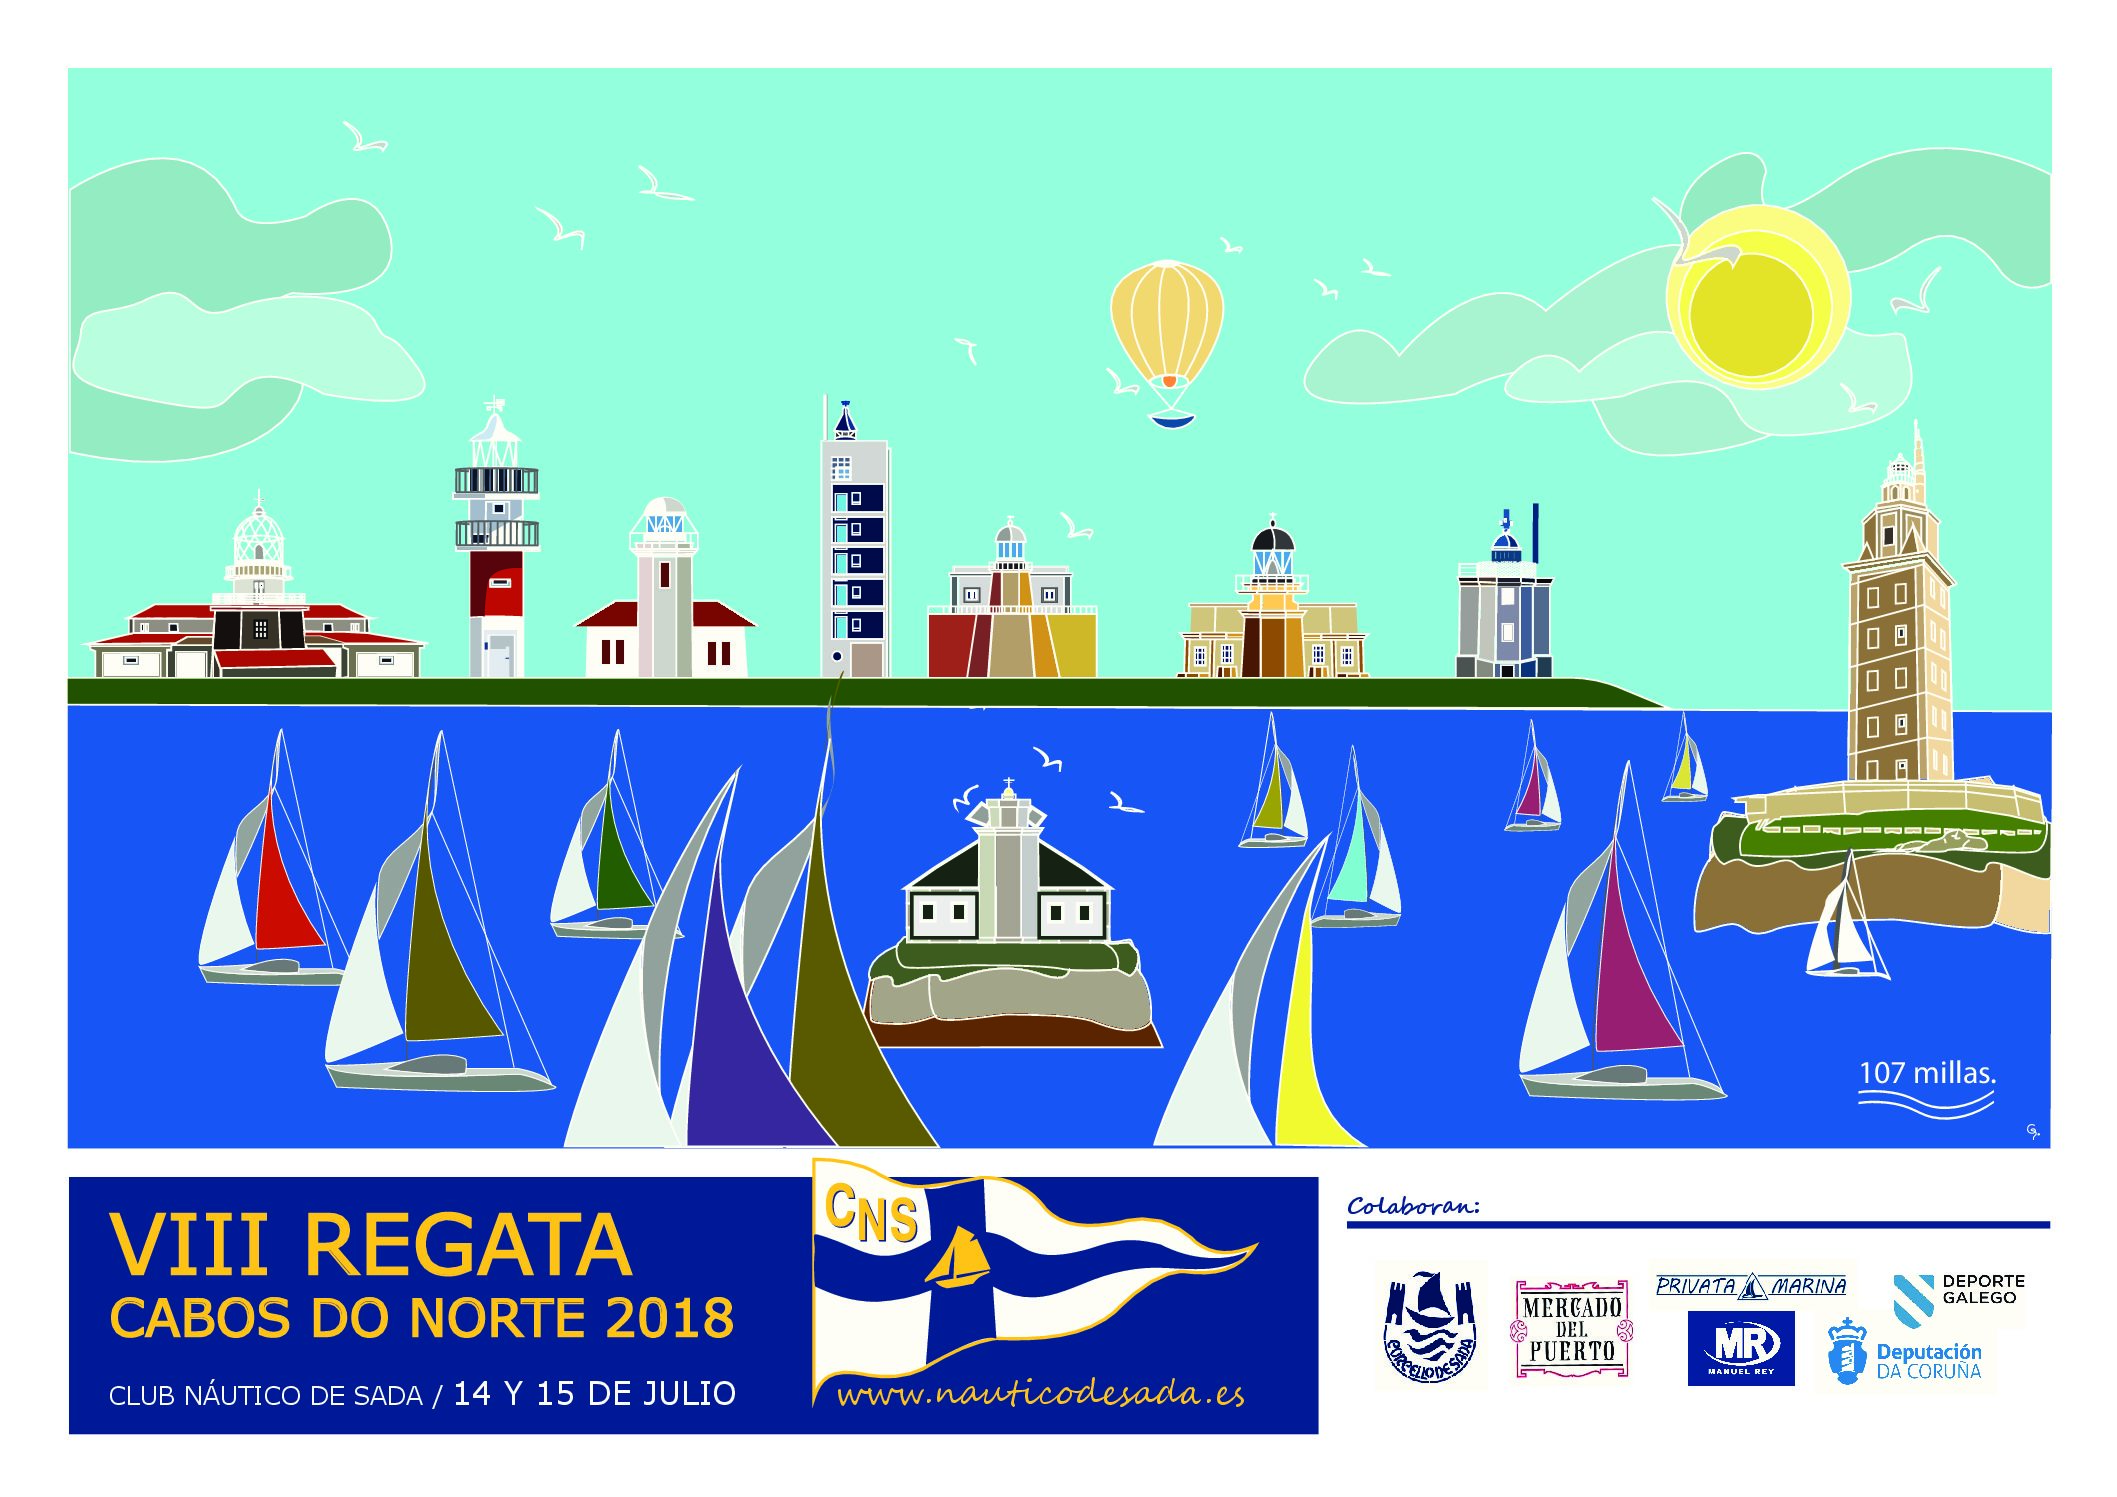 VIII EDICION REGATA CABOS DO NORTE 2018